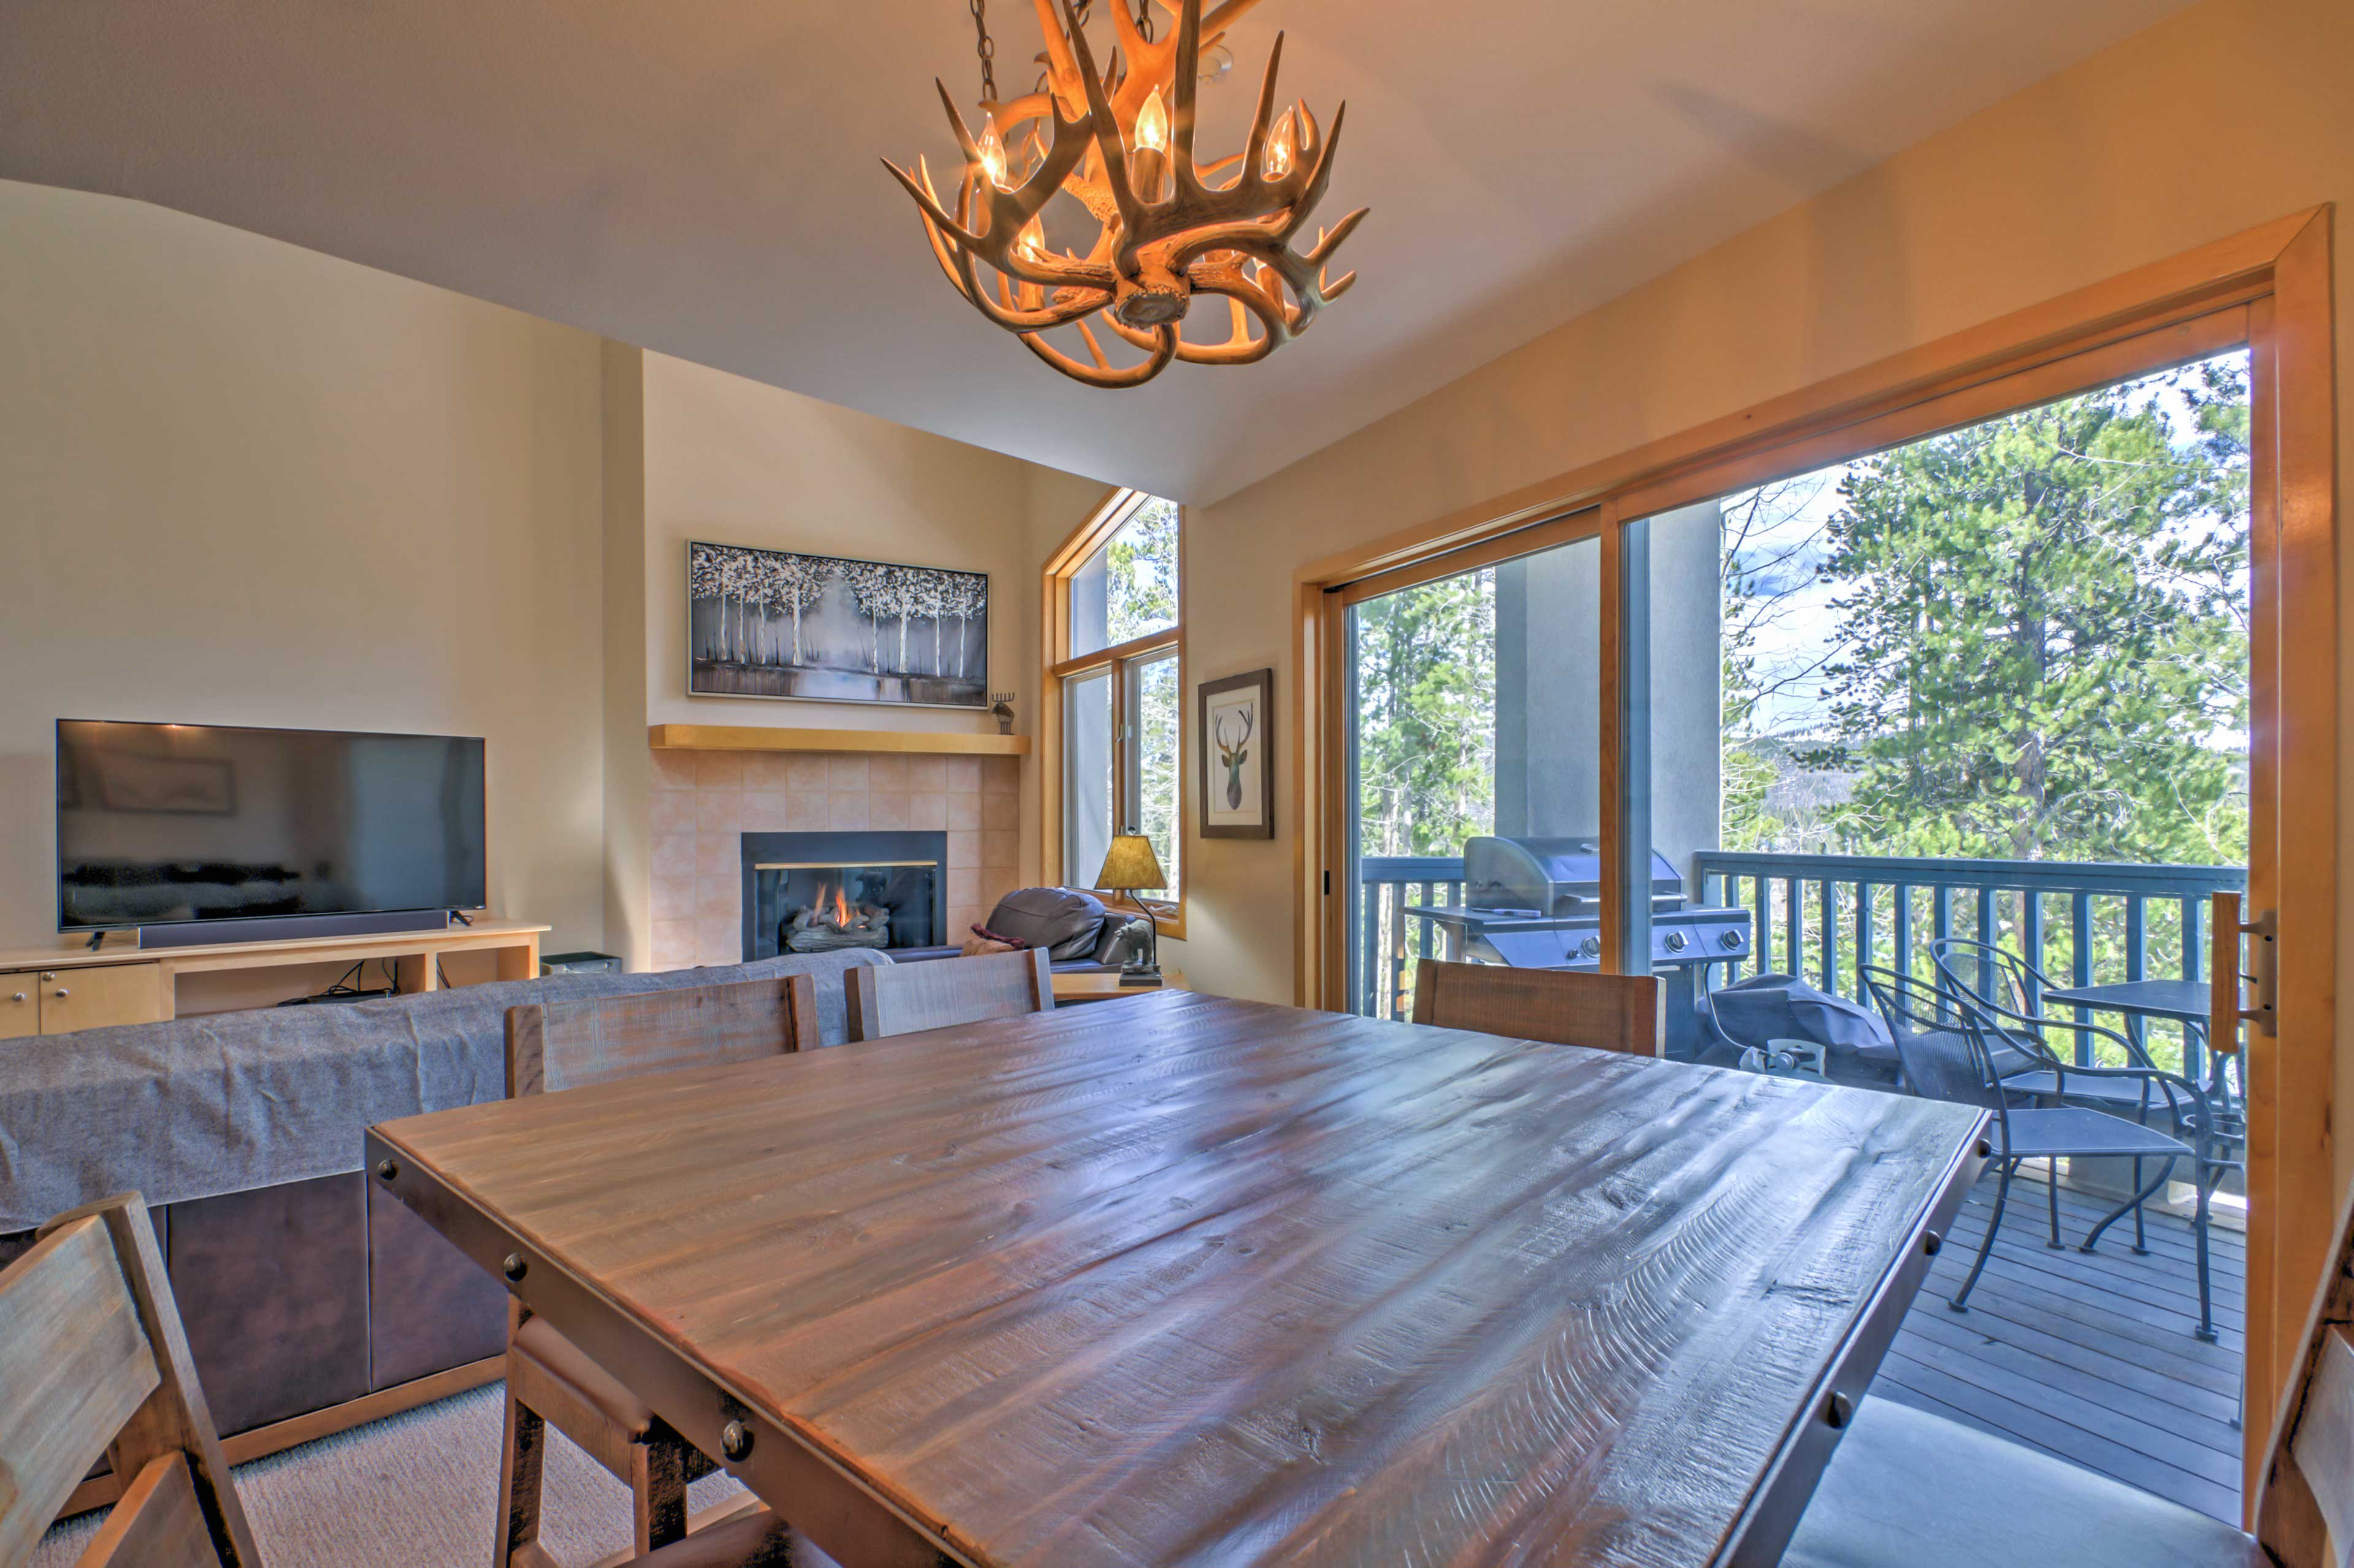 Enjoy family board games and delicious home cooked meals.